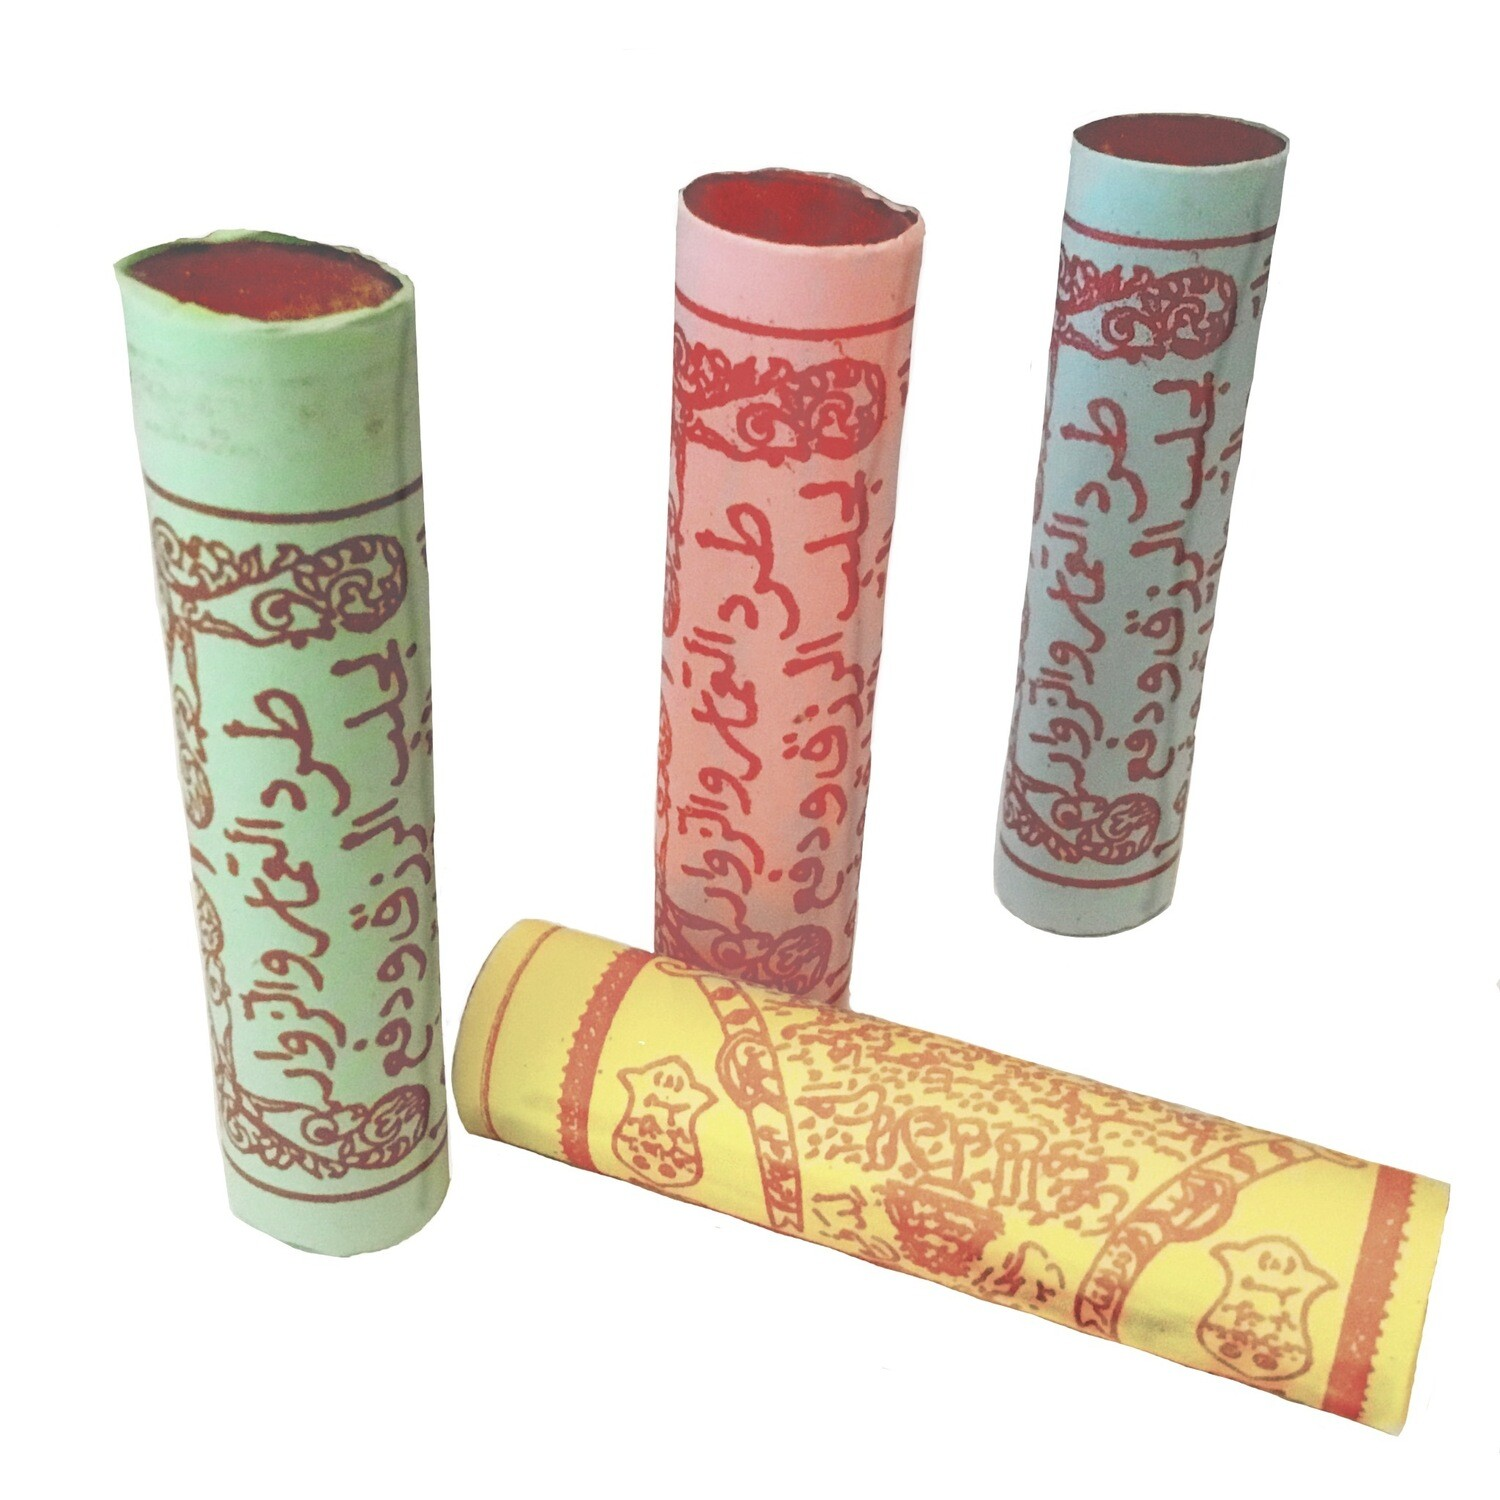 Tubular Talismanic scroll with Islamic Magic